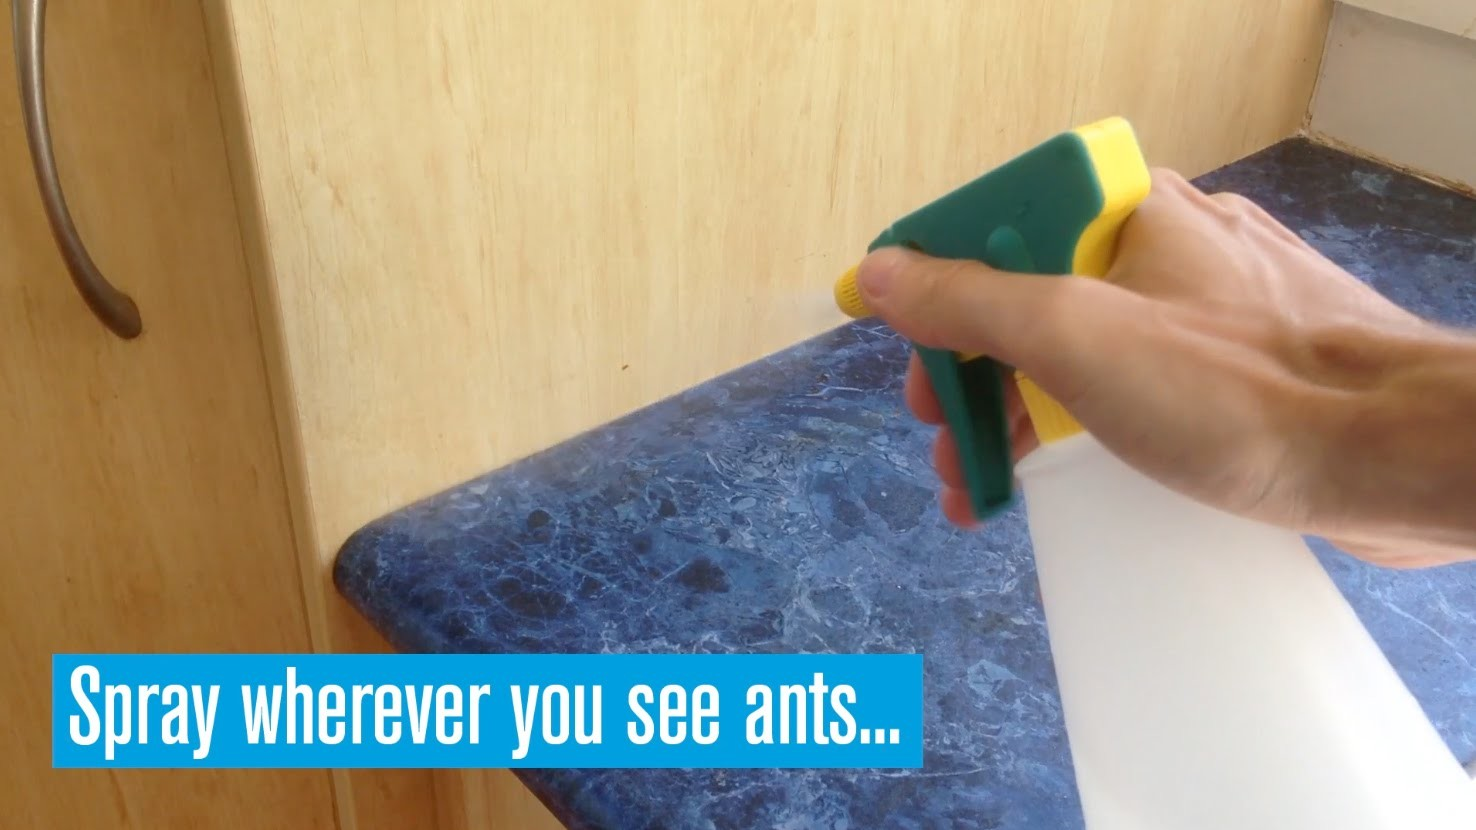 How To Deter Ants With Eco-Friendly Spray